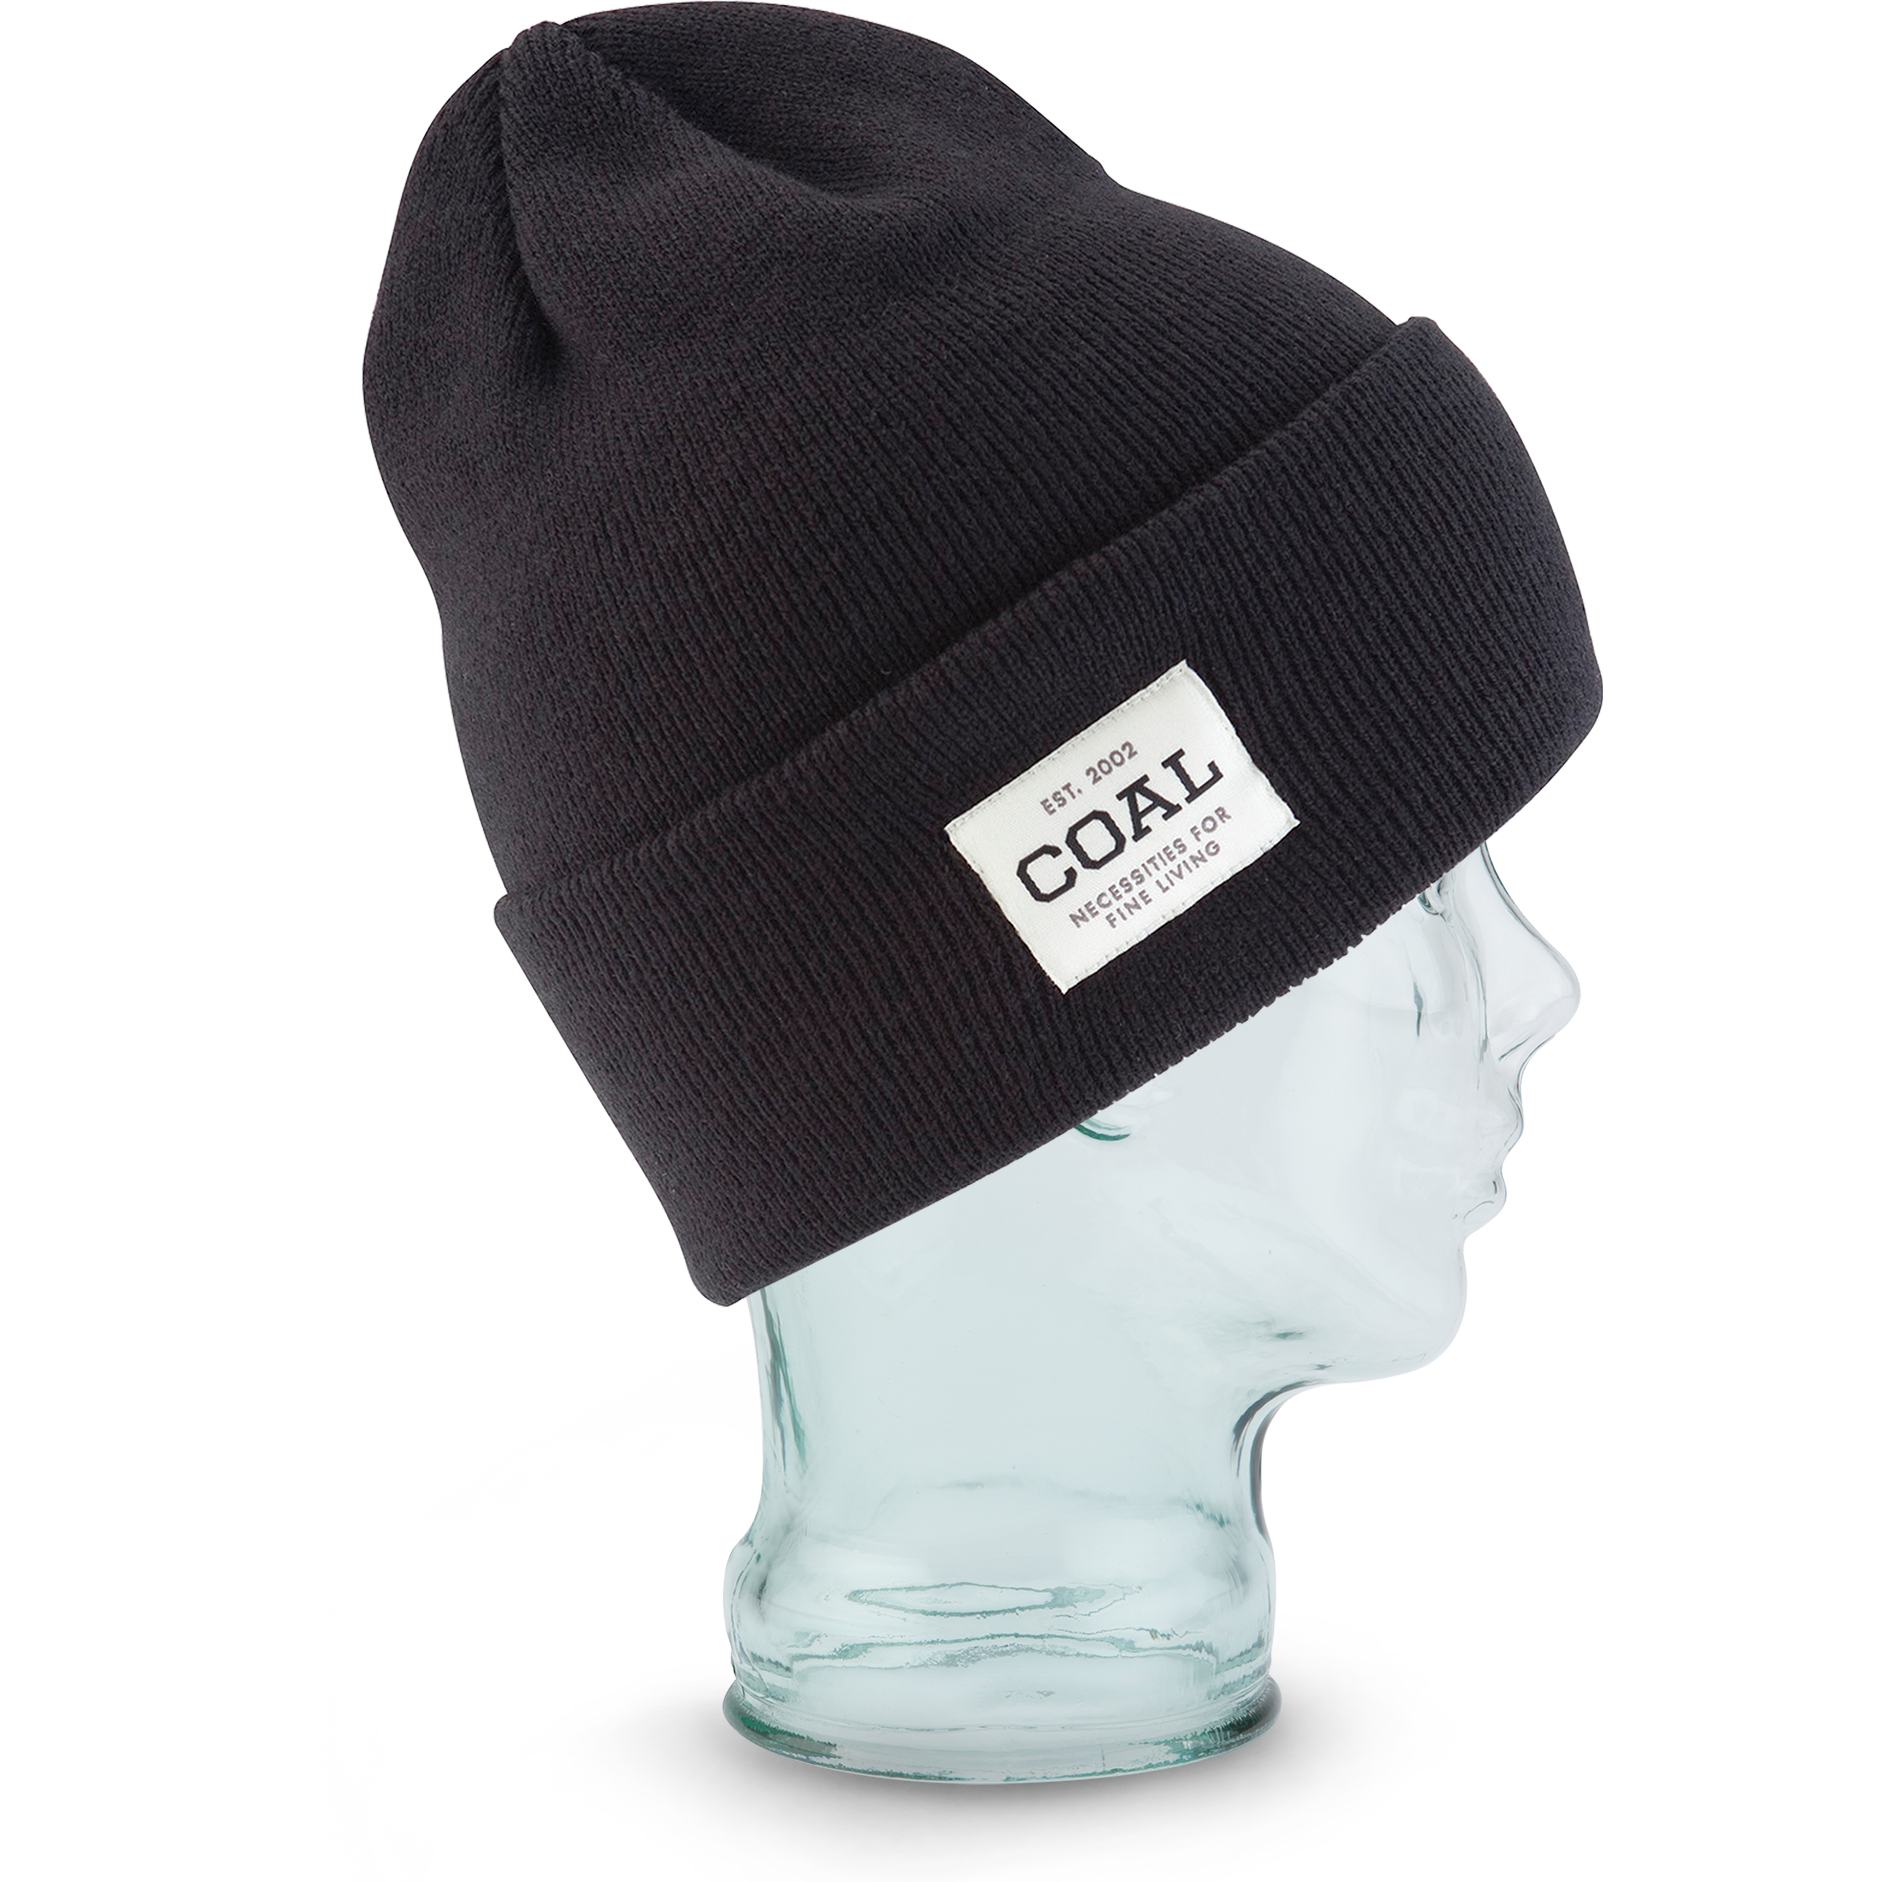 Coal The Uniform Beanie - 88 Gear